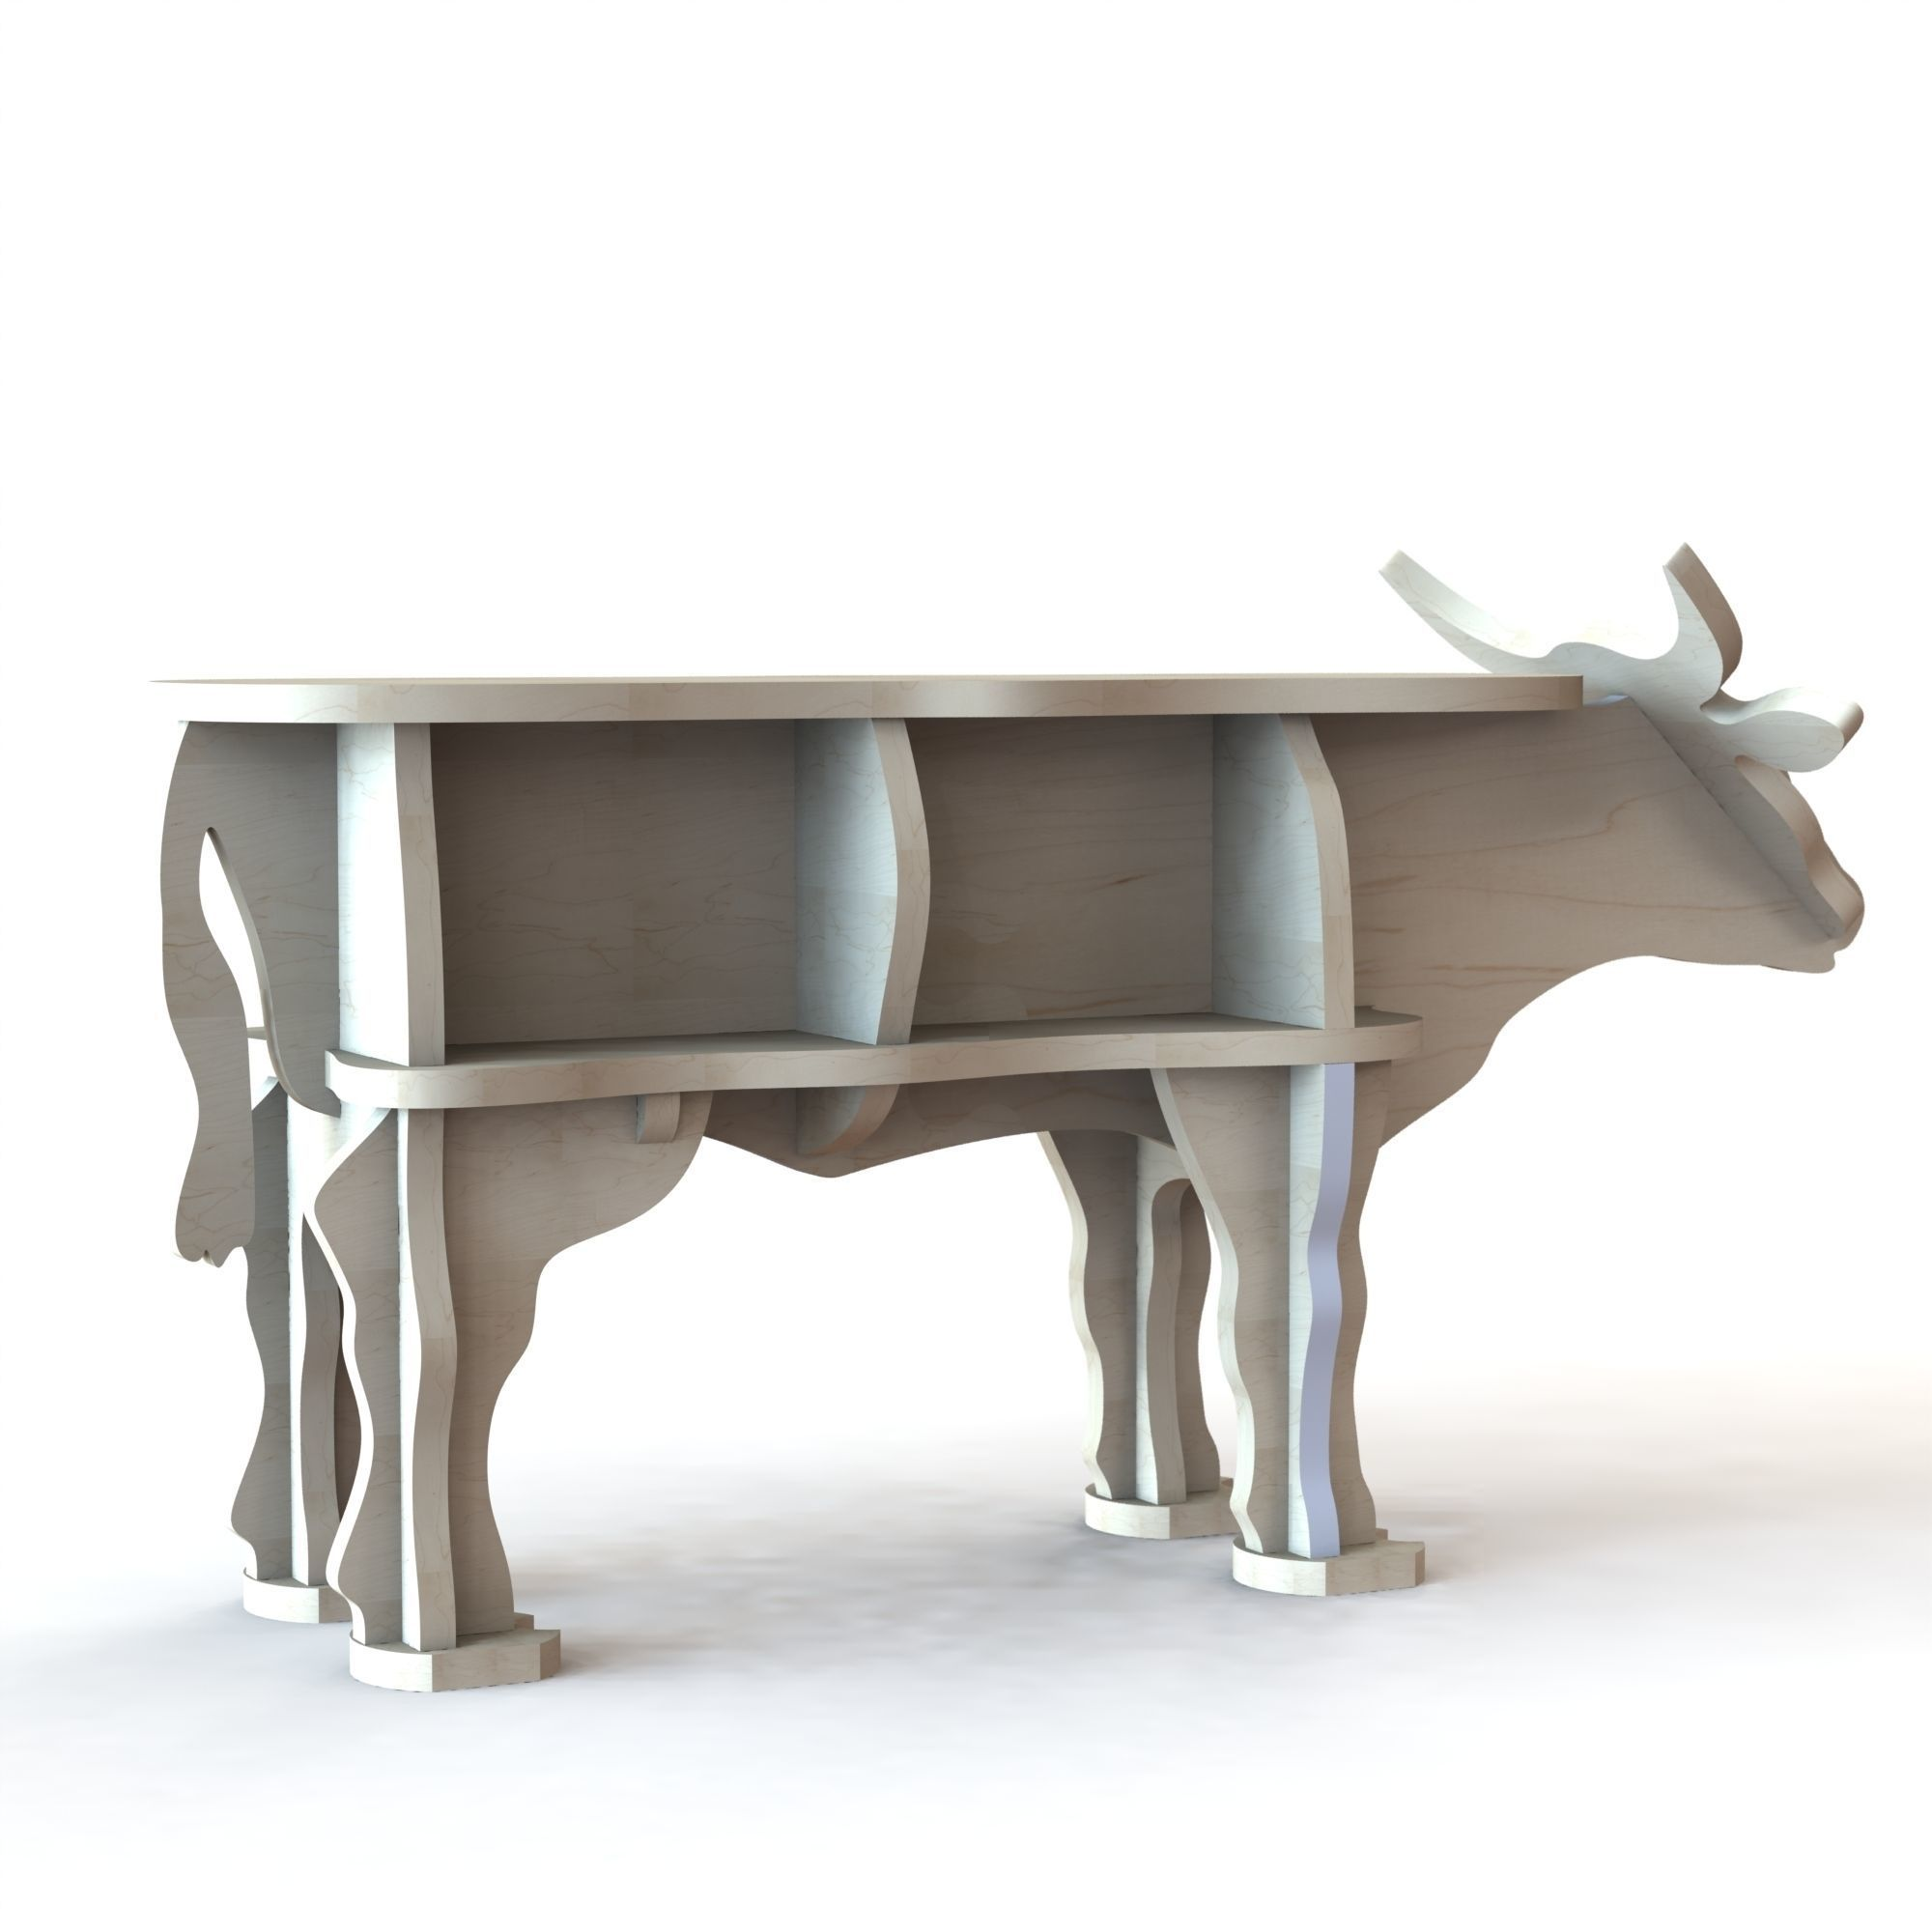 3d Model Cnc Cutting Pattern For Wooden Cow Figure With 1